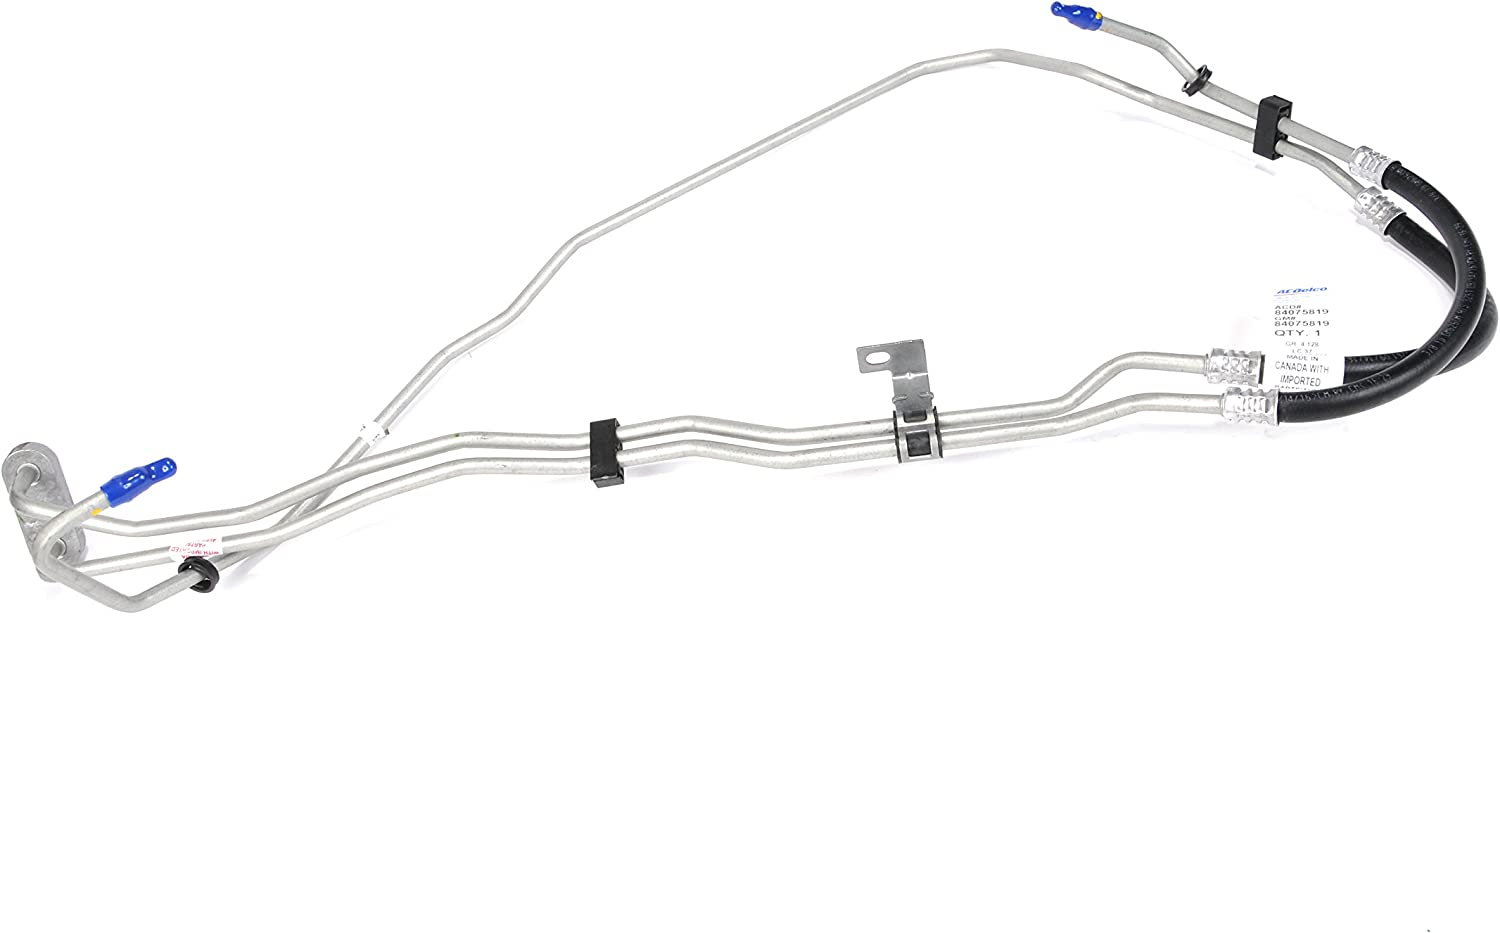 ACDelco 84075819 GM Original Equipment Automatic Transmission Fluid Cooler Inlet and Outlet Line